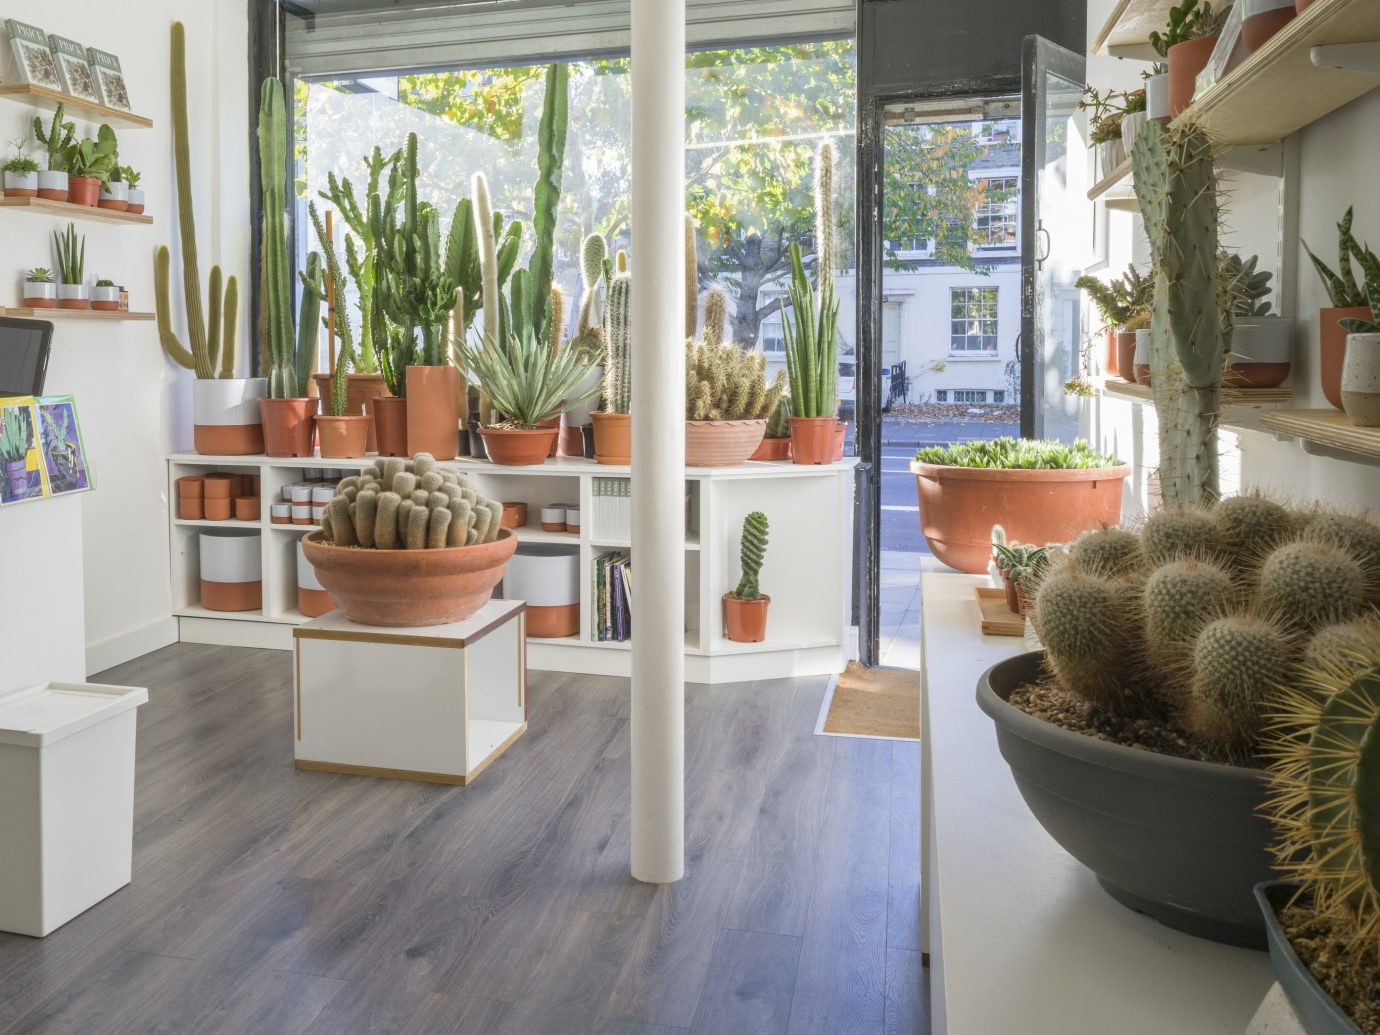 Offbeat Style + Design Travel Trends plant indoor floor cactus interior design flowerpot agave real estate houseplant living room furniture flowering plant tub